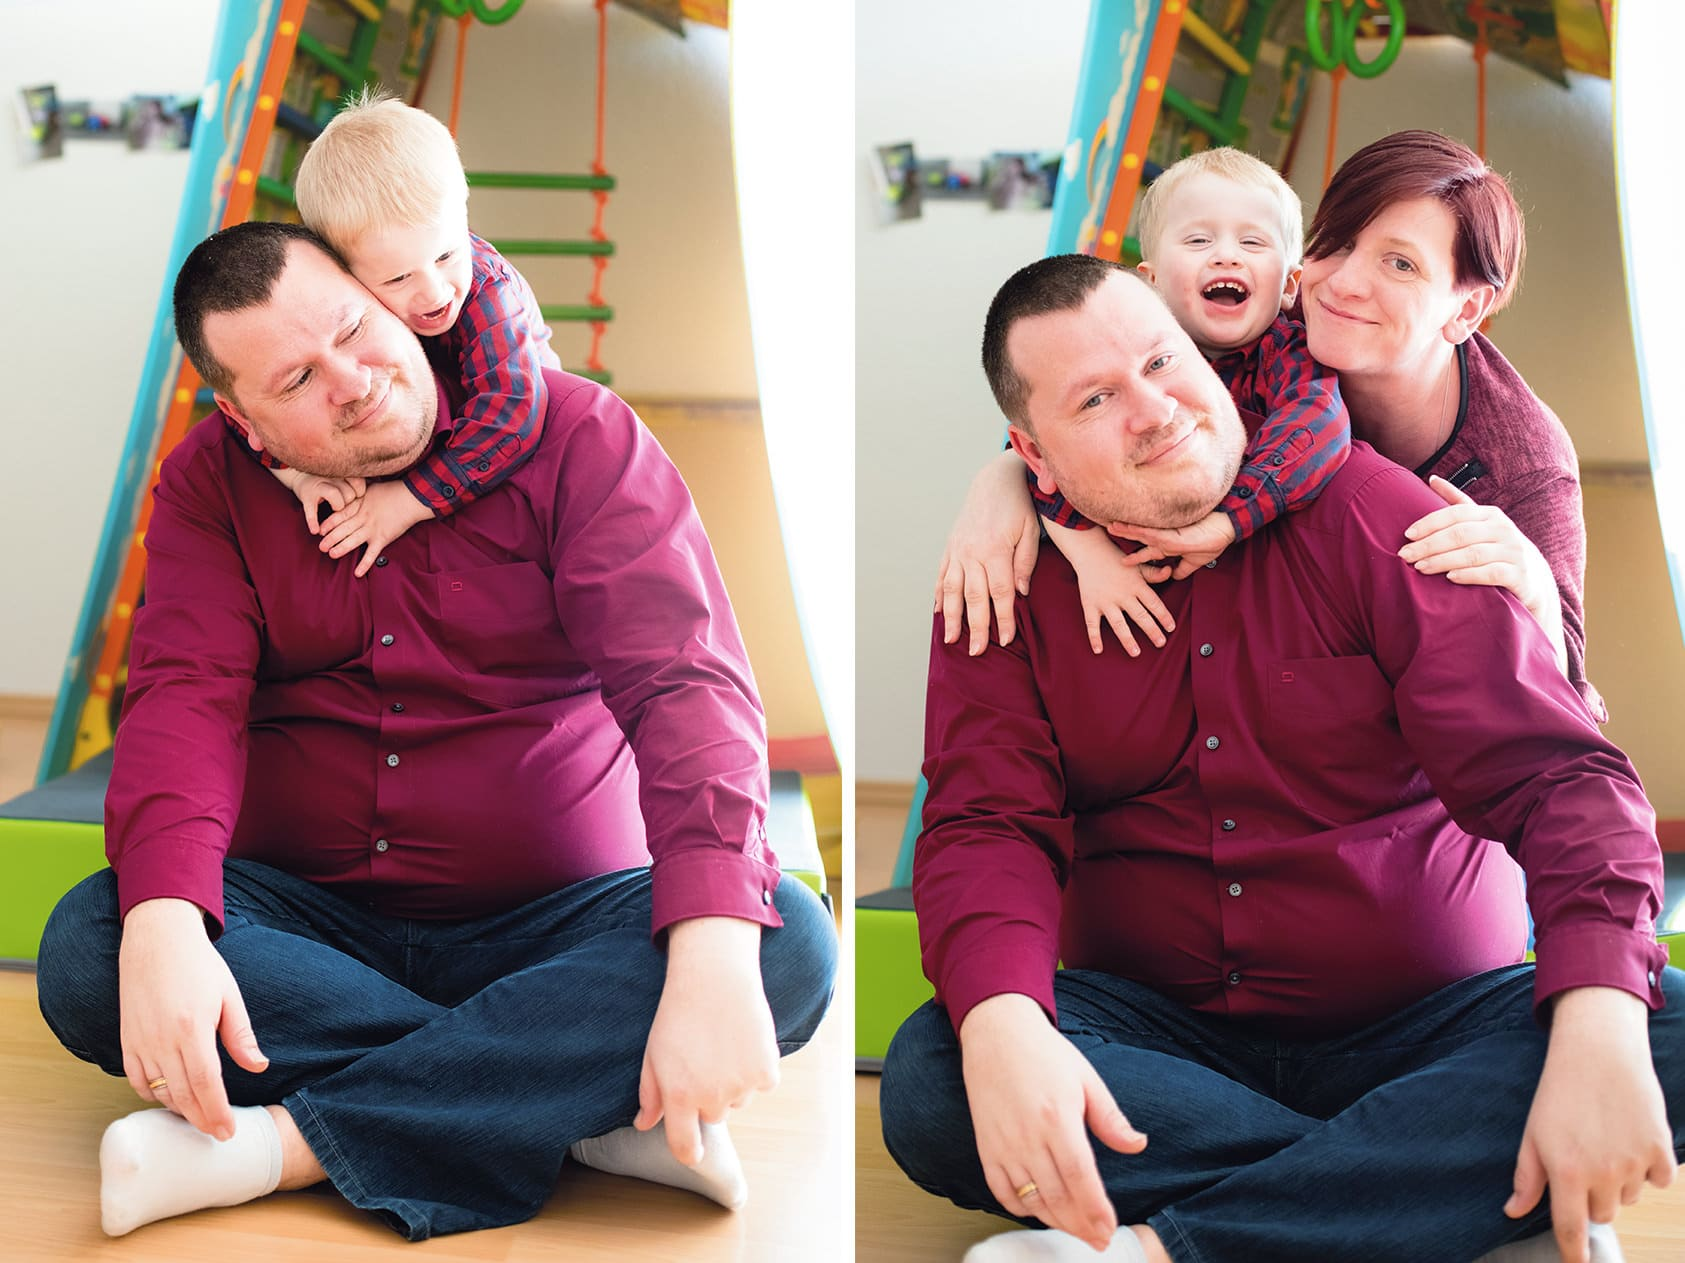 Tapfere-Knirpse-Familienshooting-Pinetree-Photography-Herzkrank-Ehrenamt-Mainz